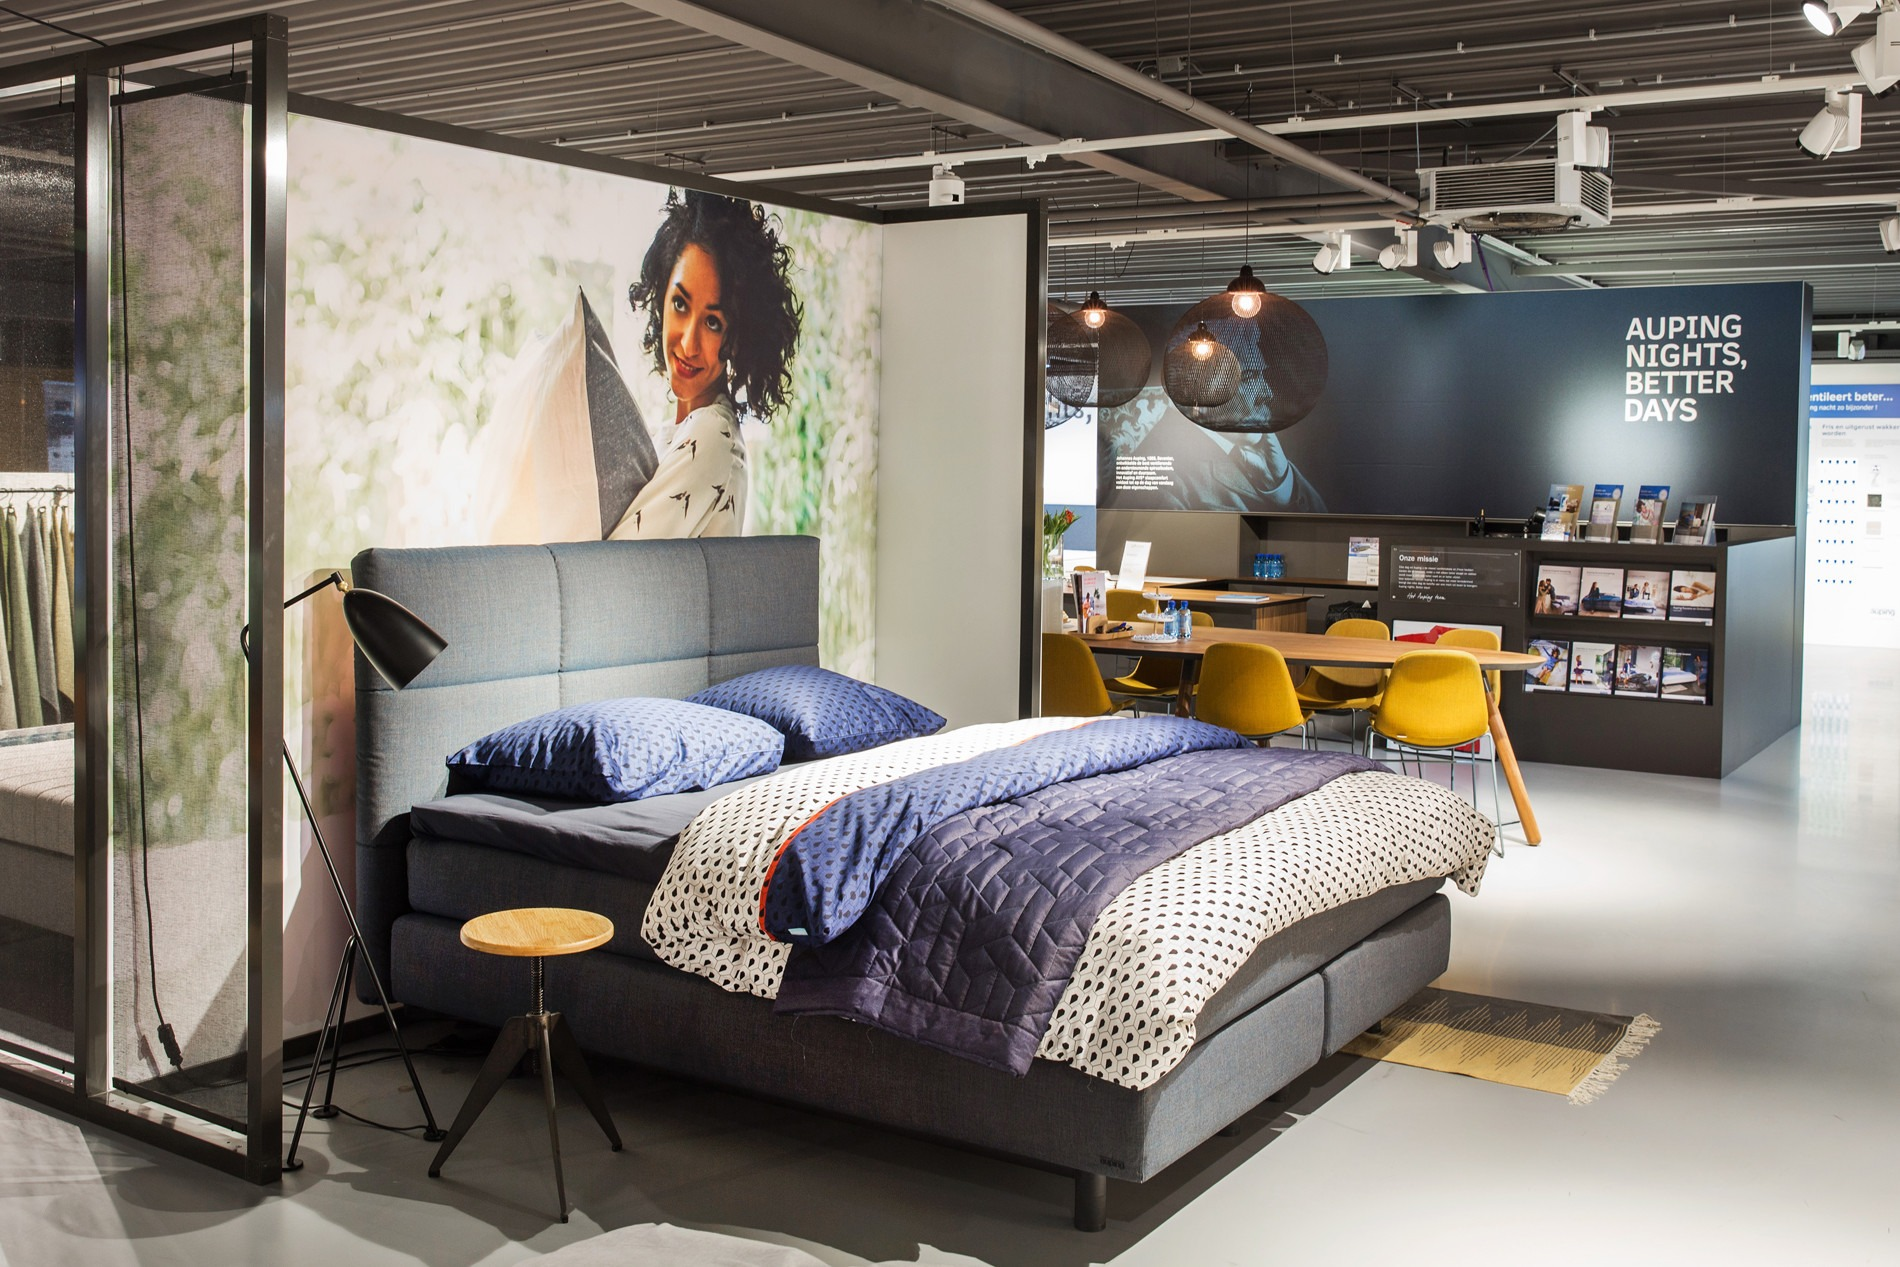 beds roermond auping